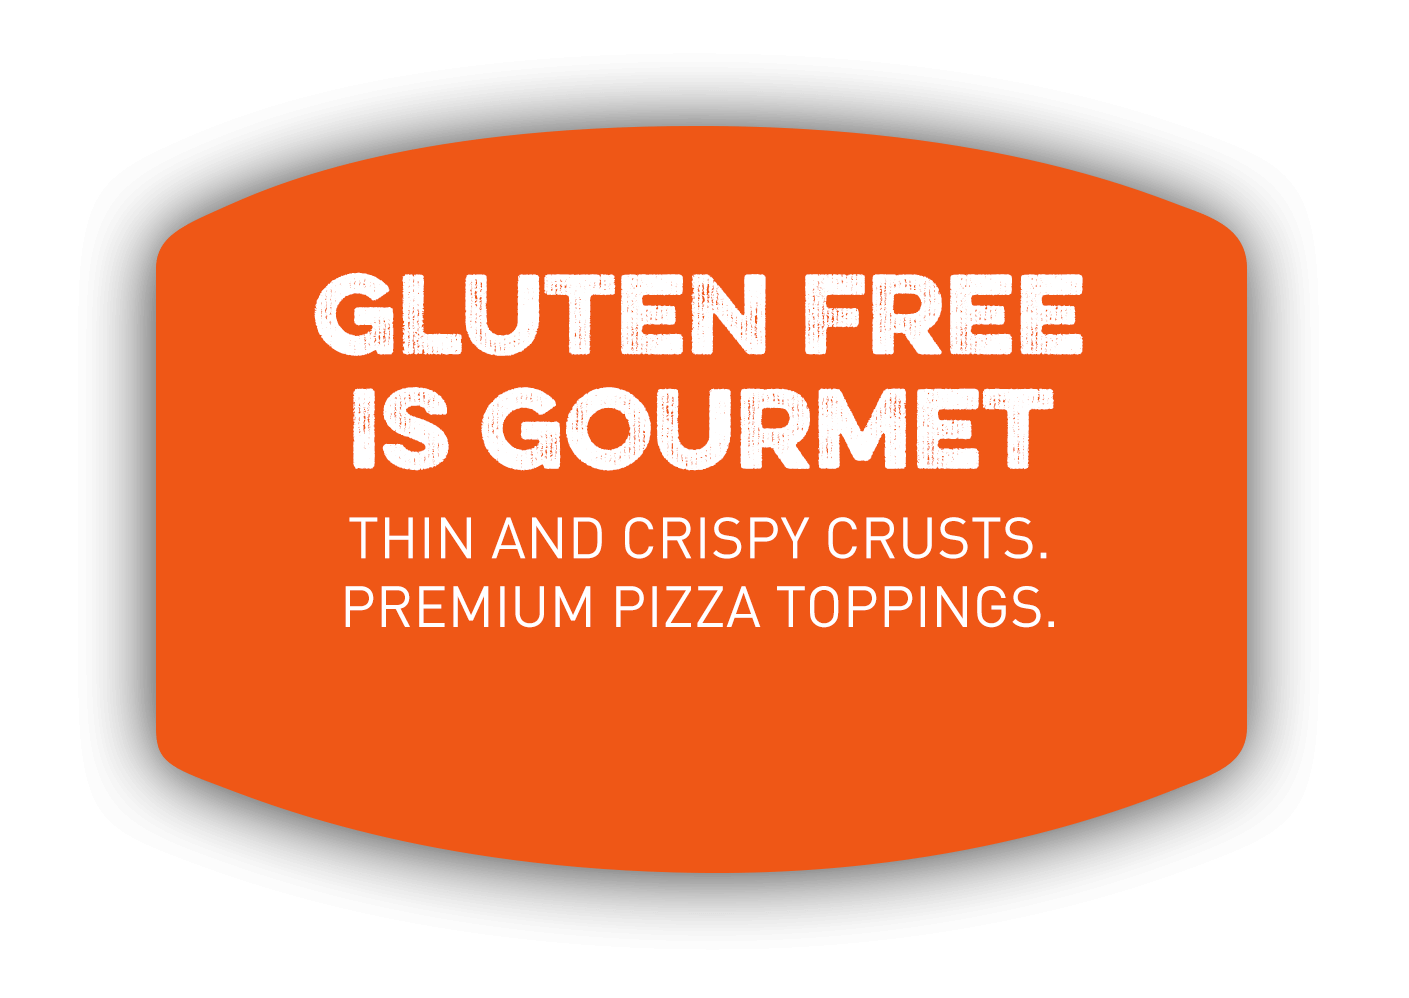 GLUTEN FREE IS GOURMET. Thin and crispy crusts. Premium pizza toppings.